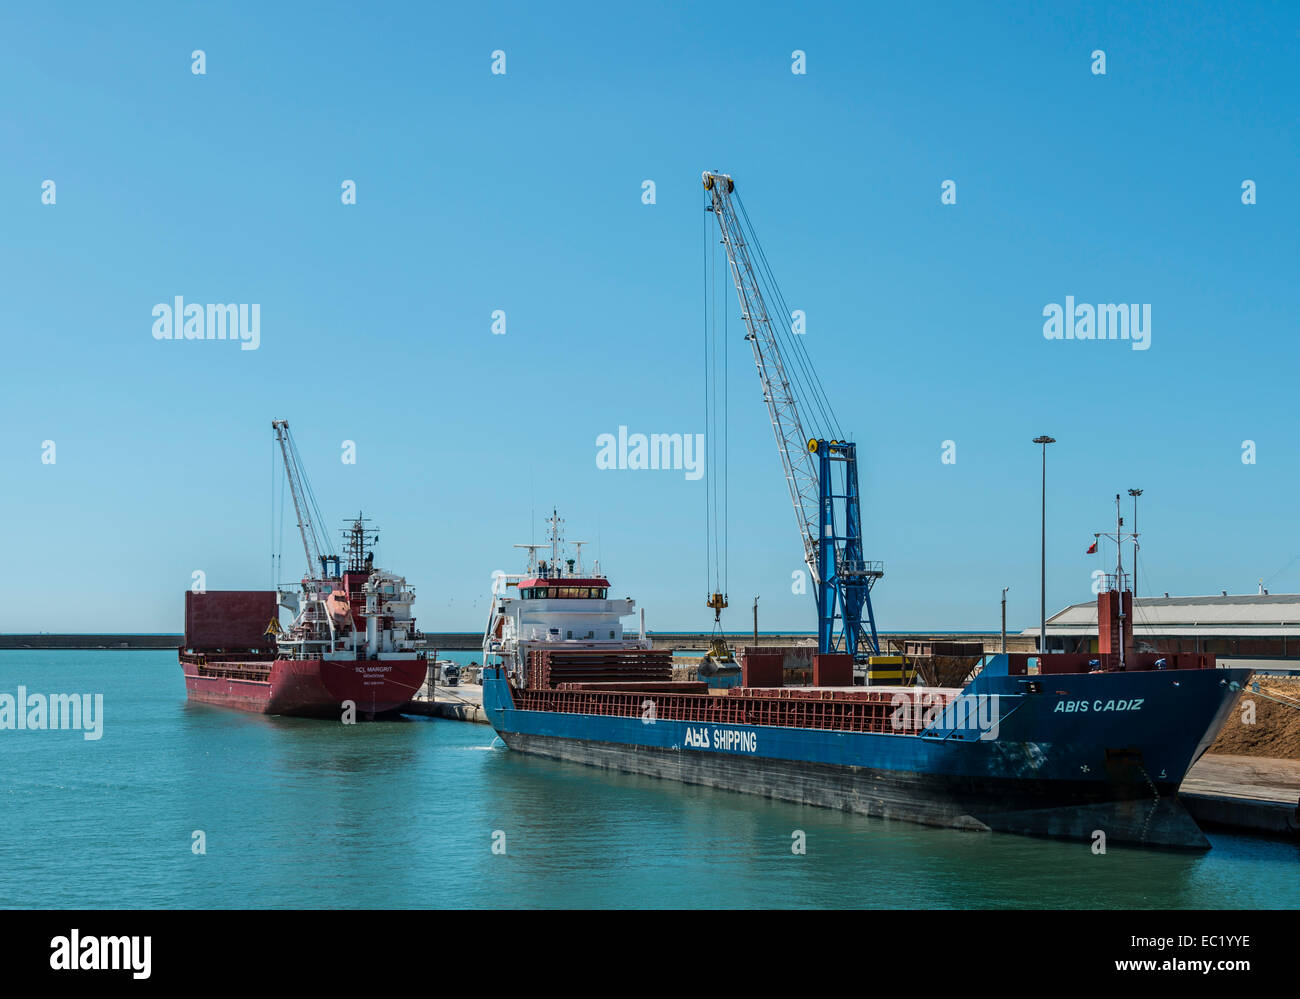 Ship being loaded with coal, cargo port of Livorno, Tuscany, Italy Stock Photo